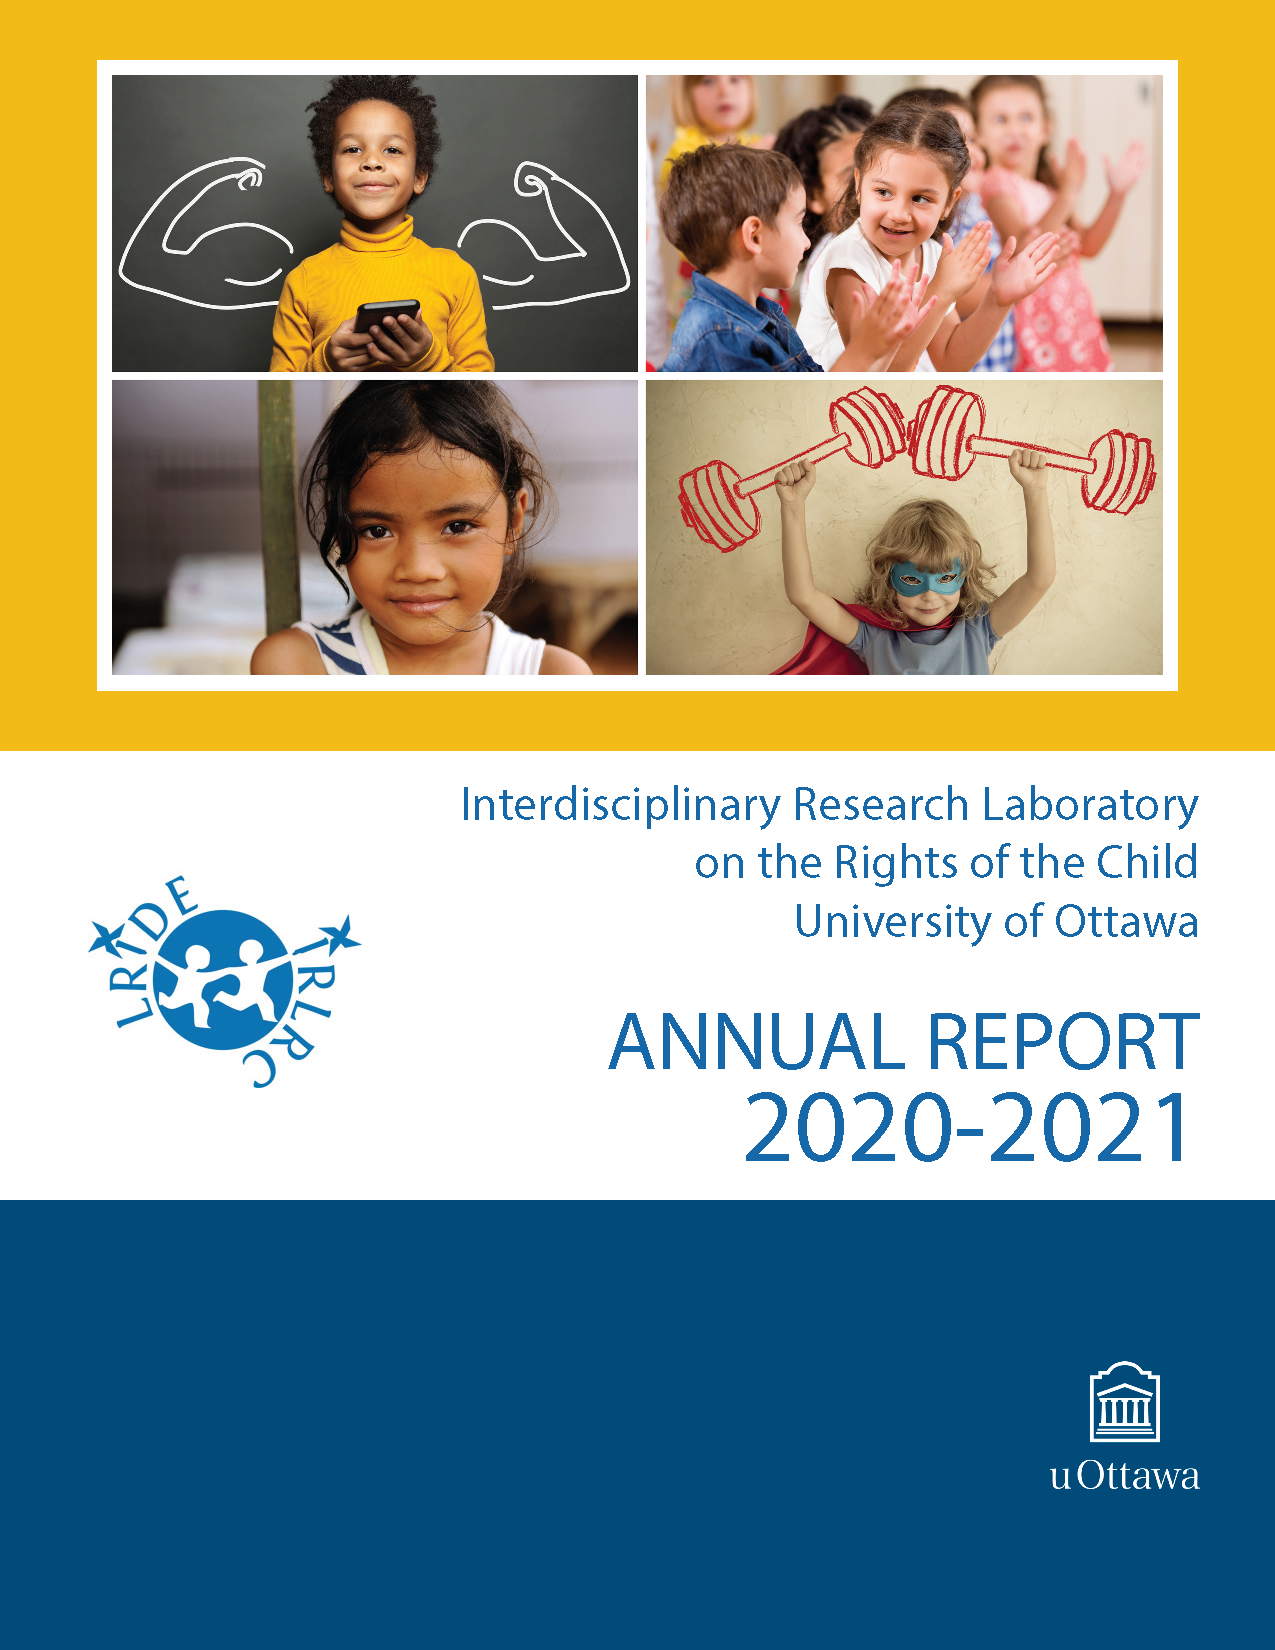 Title page of the 2020-2021 Annual Report of the Interdisciplinary Research Laboratory on the Rights of the Child at the University of Ottawa